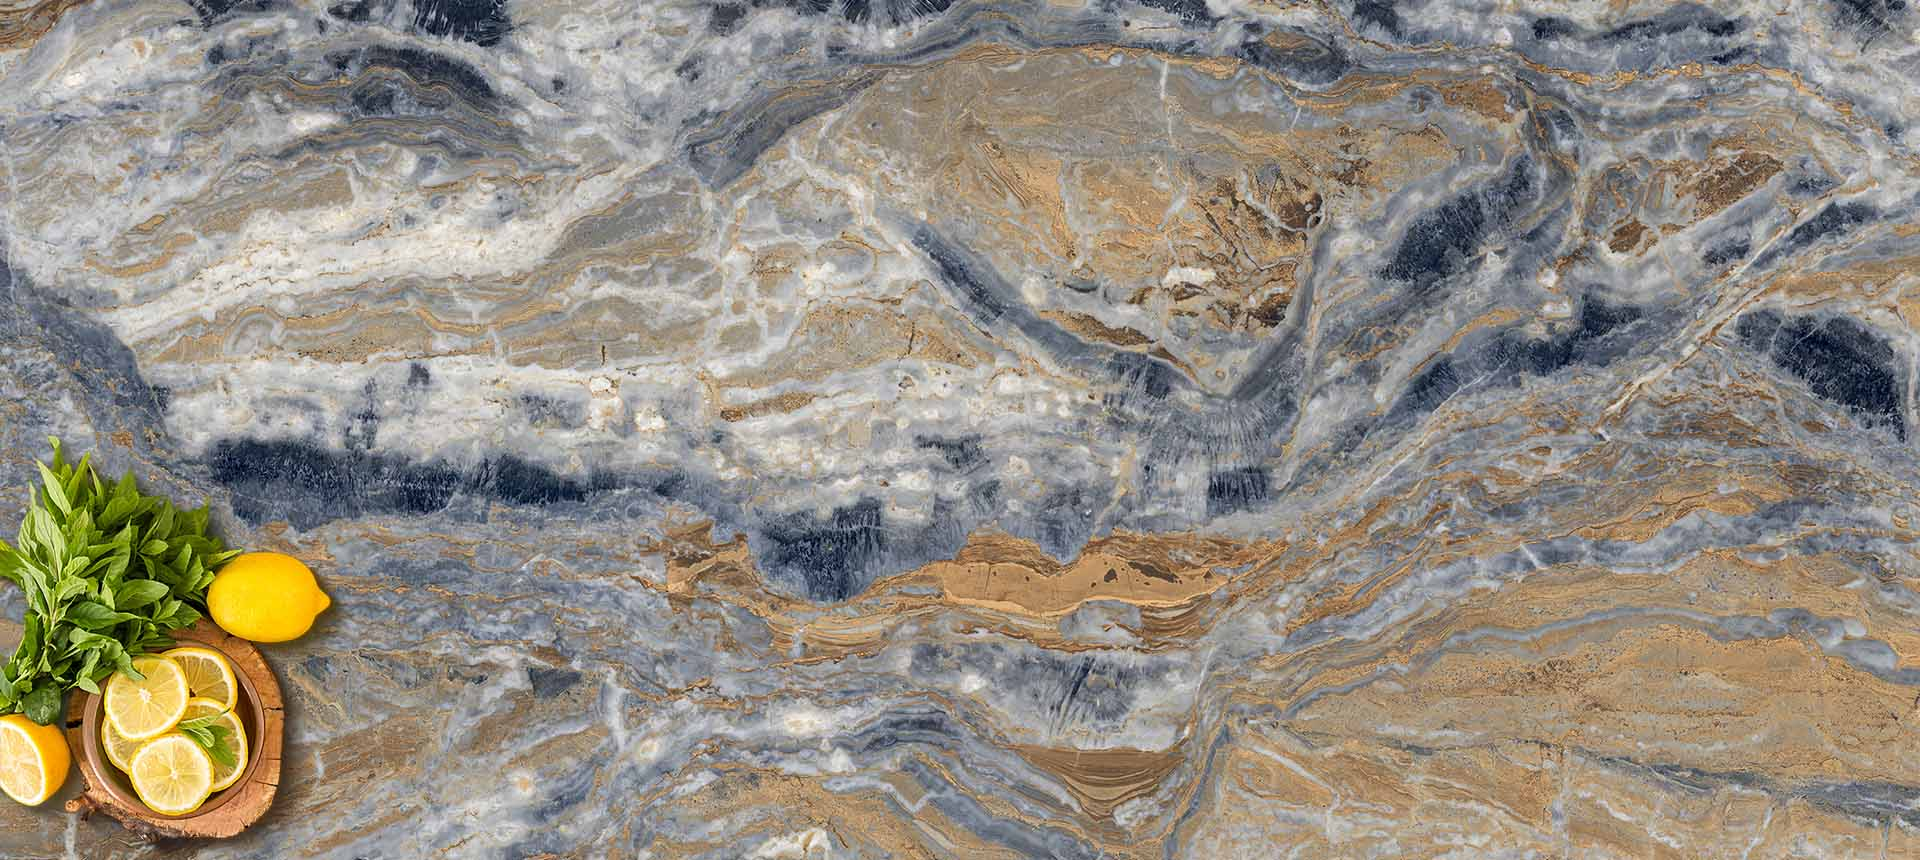 OPERA AZUL-RP1046_Full Slab_With Material_1600x800 mm_1920x860